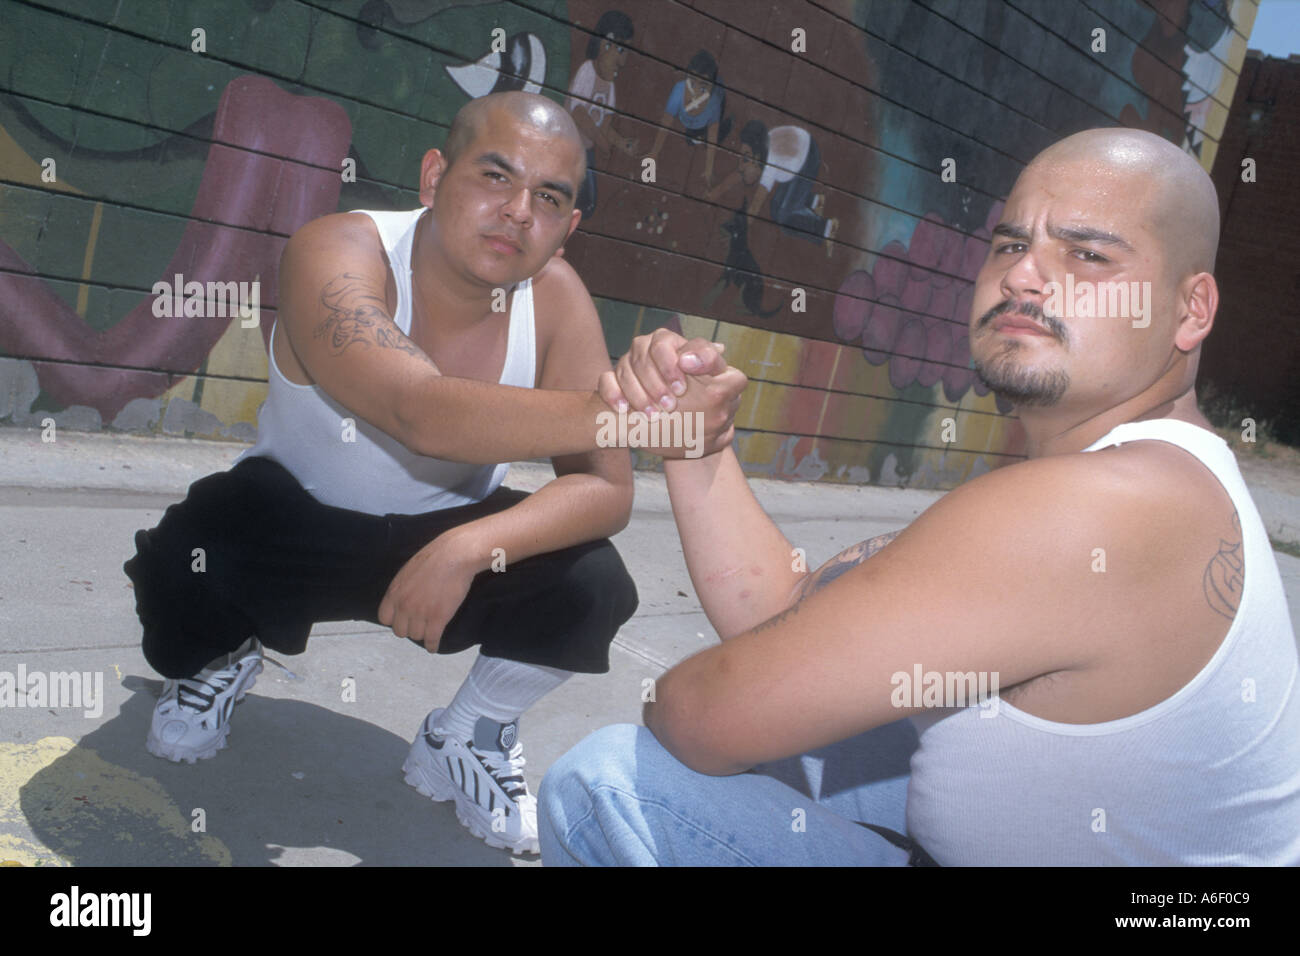 Former Latino gang members greeting each other in a park Los Angeles, United States of America - Stock Image